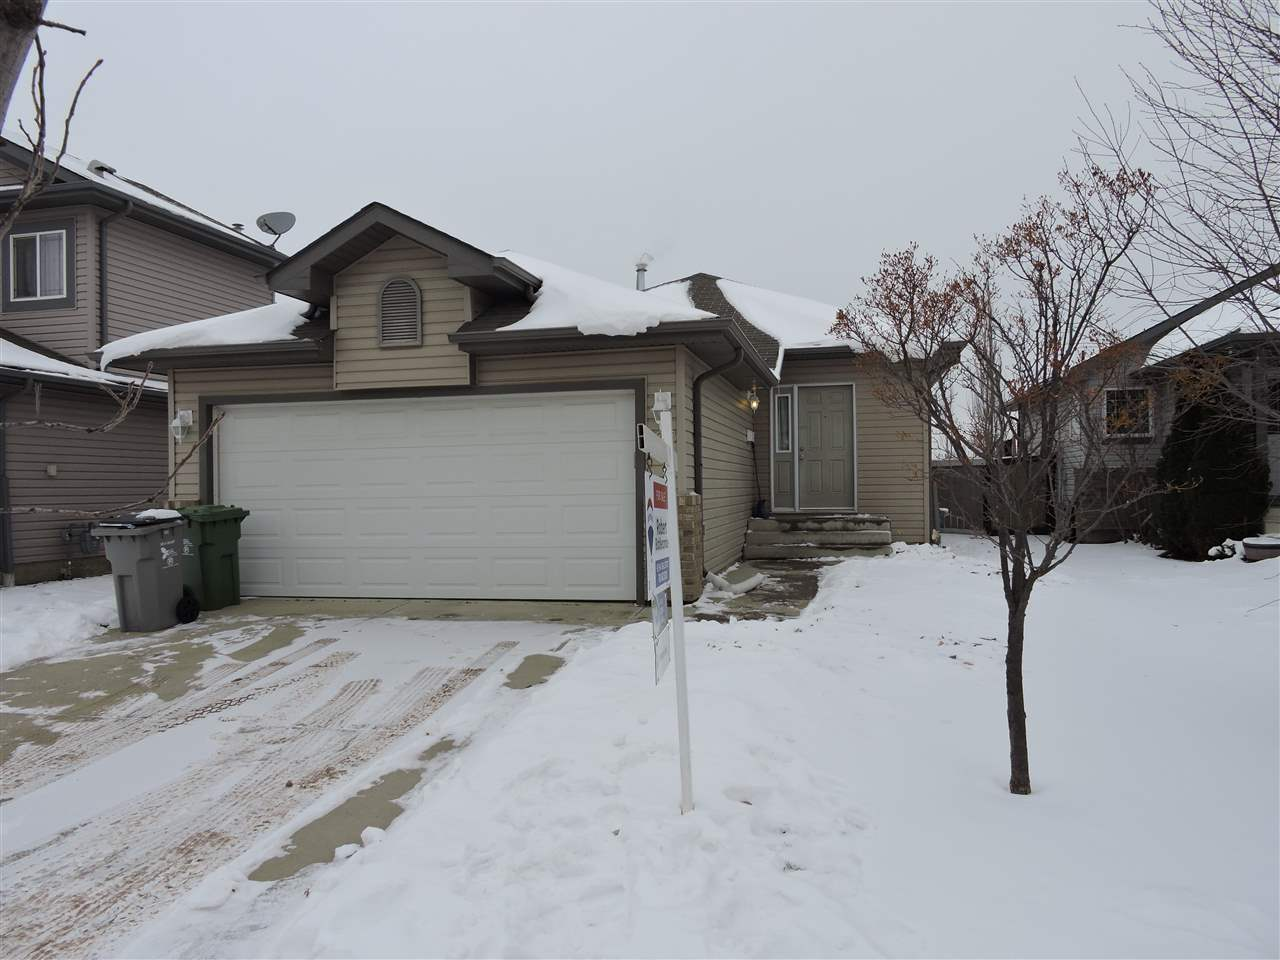 Beautiful 1102 sq ft Bungalow located in Goudreau Terrace. Great location close to Edmonton Int'l Airport,Anthony Henday,Schools,Pools and Shopping. Bright open design with three bedrooms on main floor,large living room and large kitchen with all appliances and spacious break fast nook overlooking a 12 x 12 deck and spacious back yard. And for extra room start planning to develop your unspoiled unfinished  basement with your own ideas. A must see